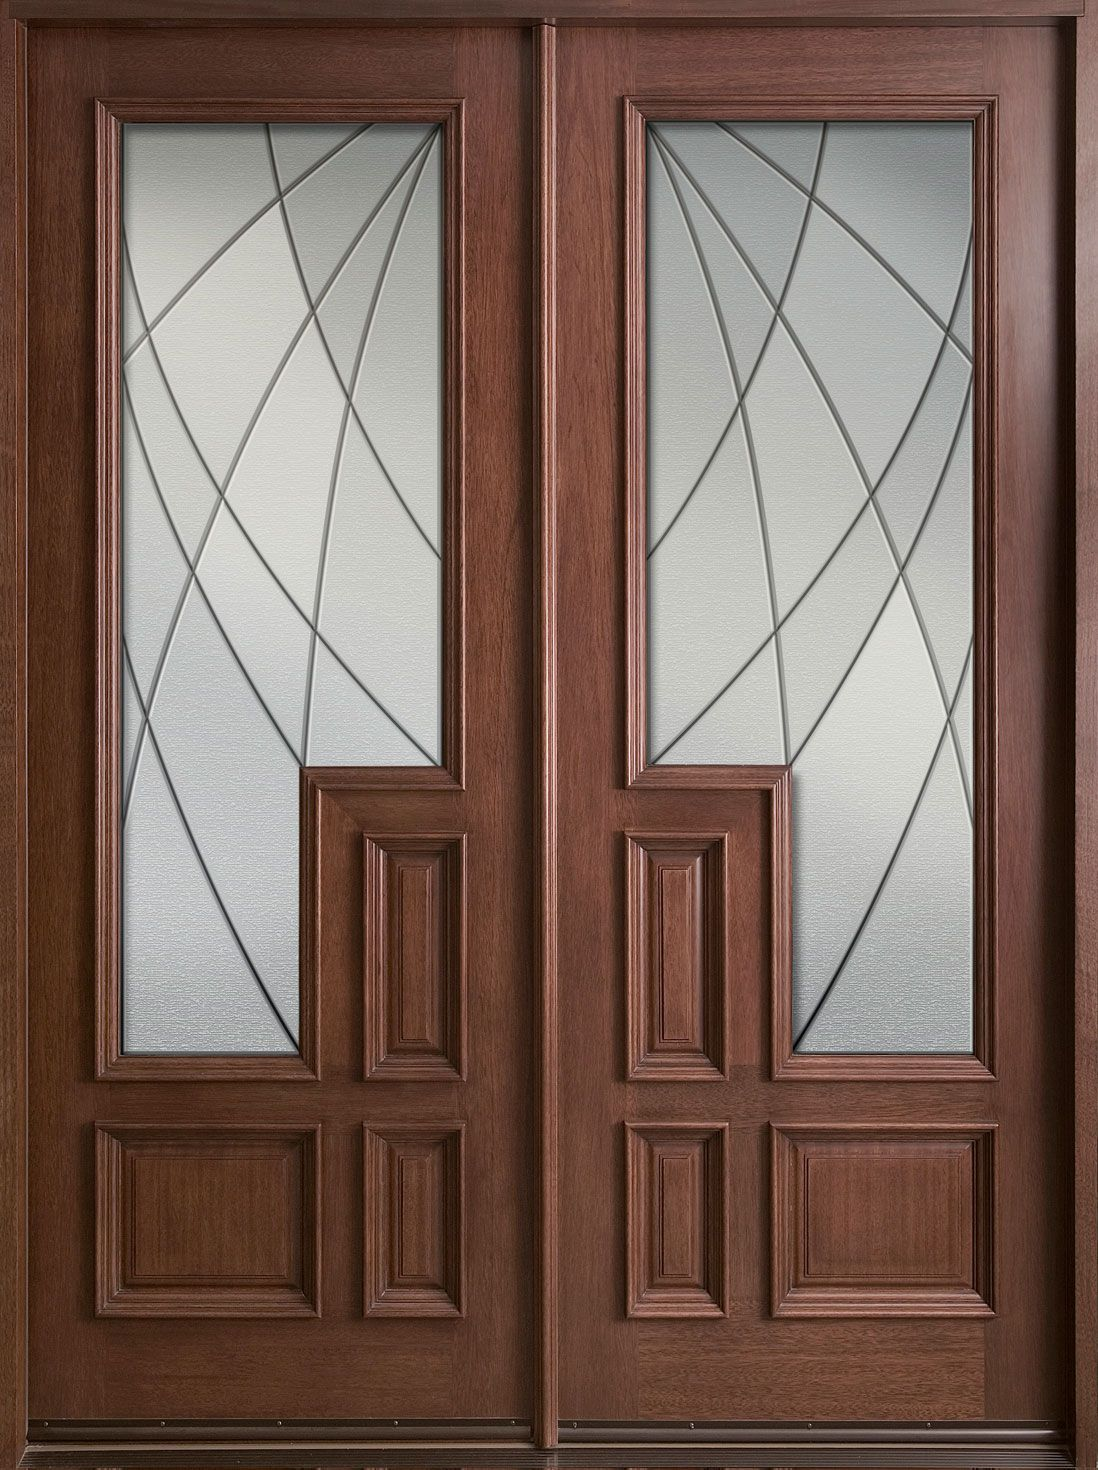 Inspiring double fiberglass entry door as furniture for for Entrance door design for flats